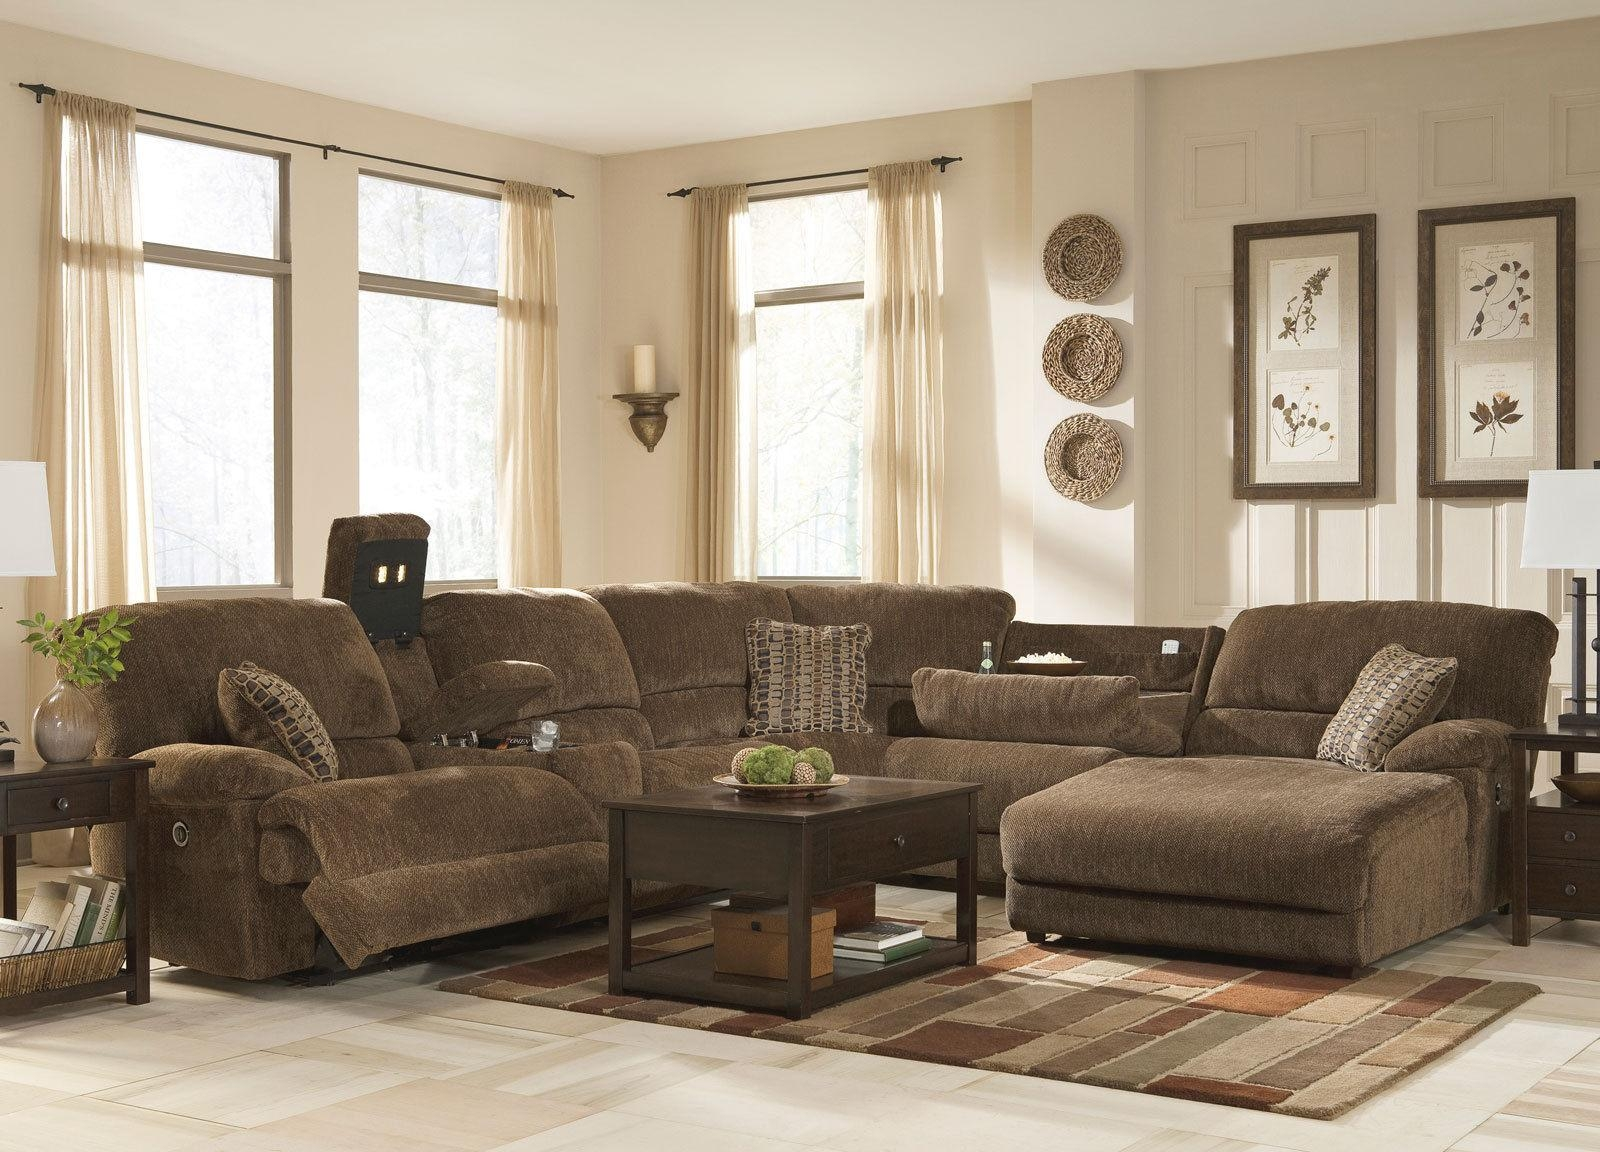 20 Ideas of Chenille Sectional Sofas